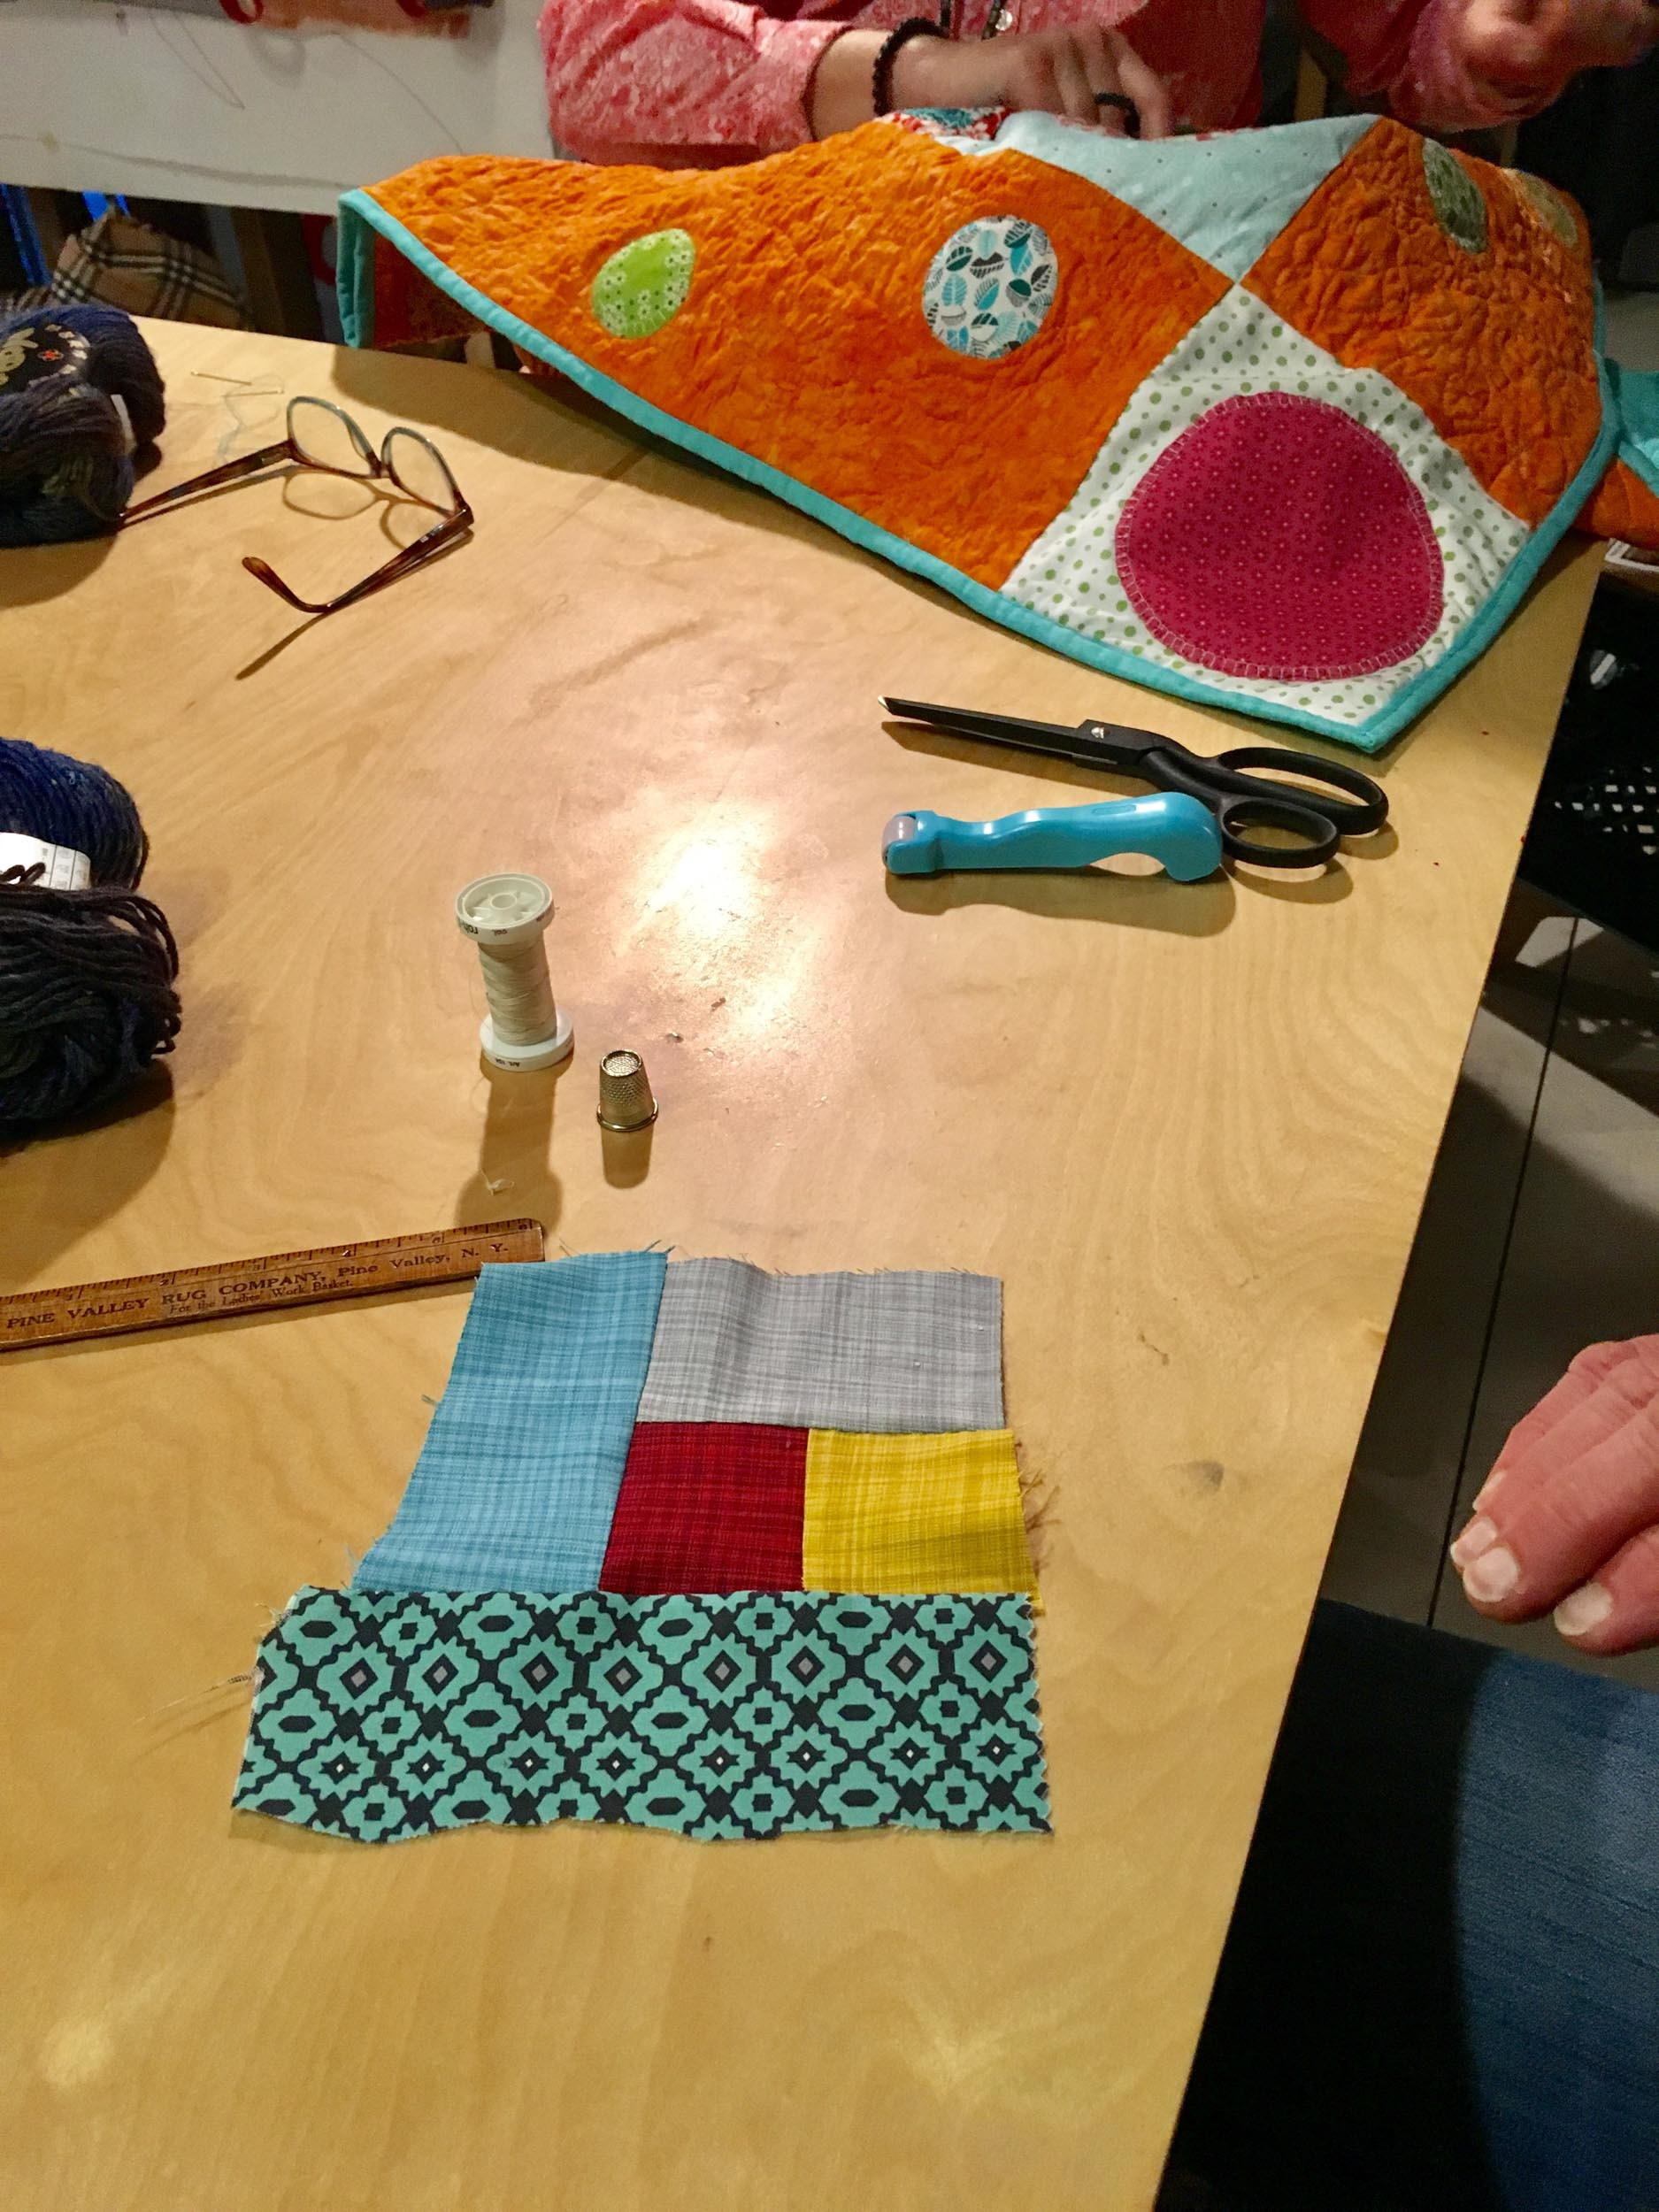 wassaic-project-education-fiber-arts-club-2018-04-17-19-29-21.jpg